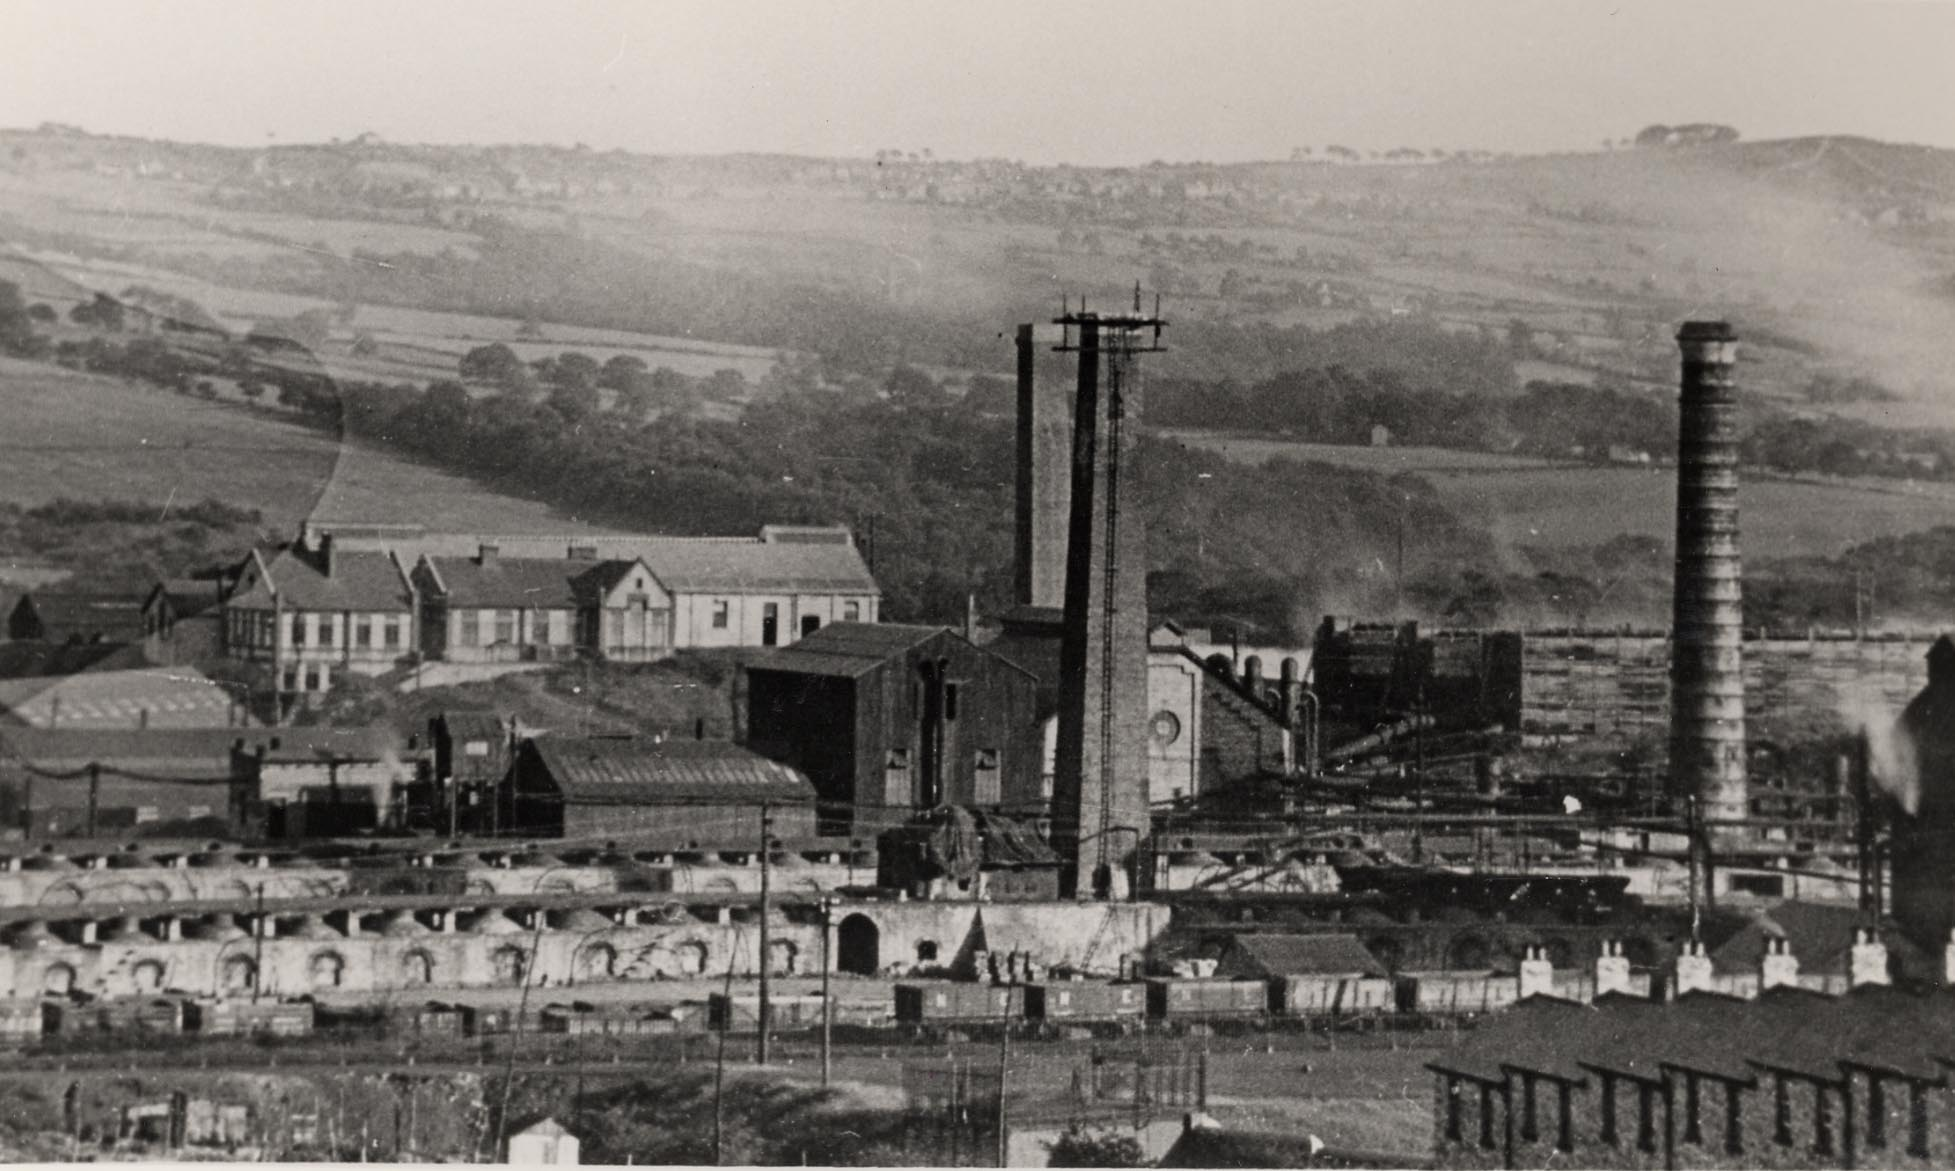 Whinfield Coke Works, Rowlands Gill